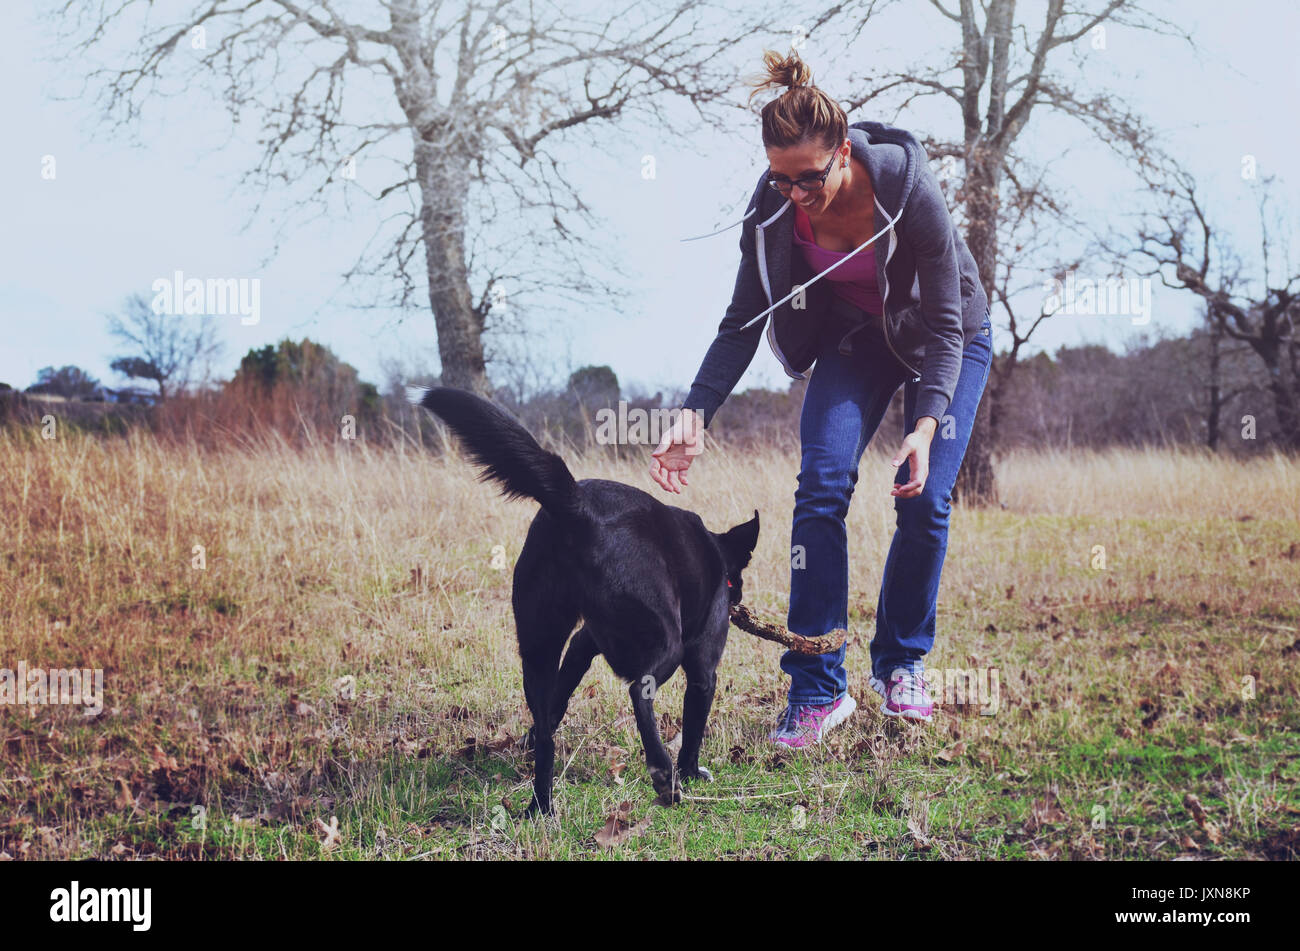 Woman playing fetch with pet dog in pasture, authentic active family lifestyle with animal. - Stock Image